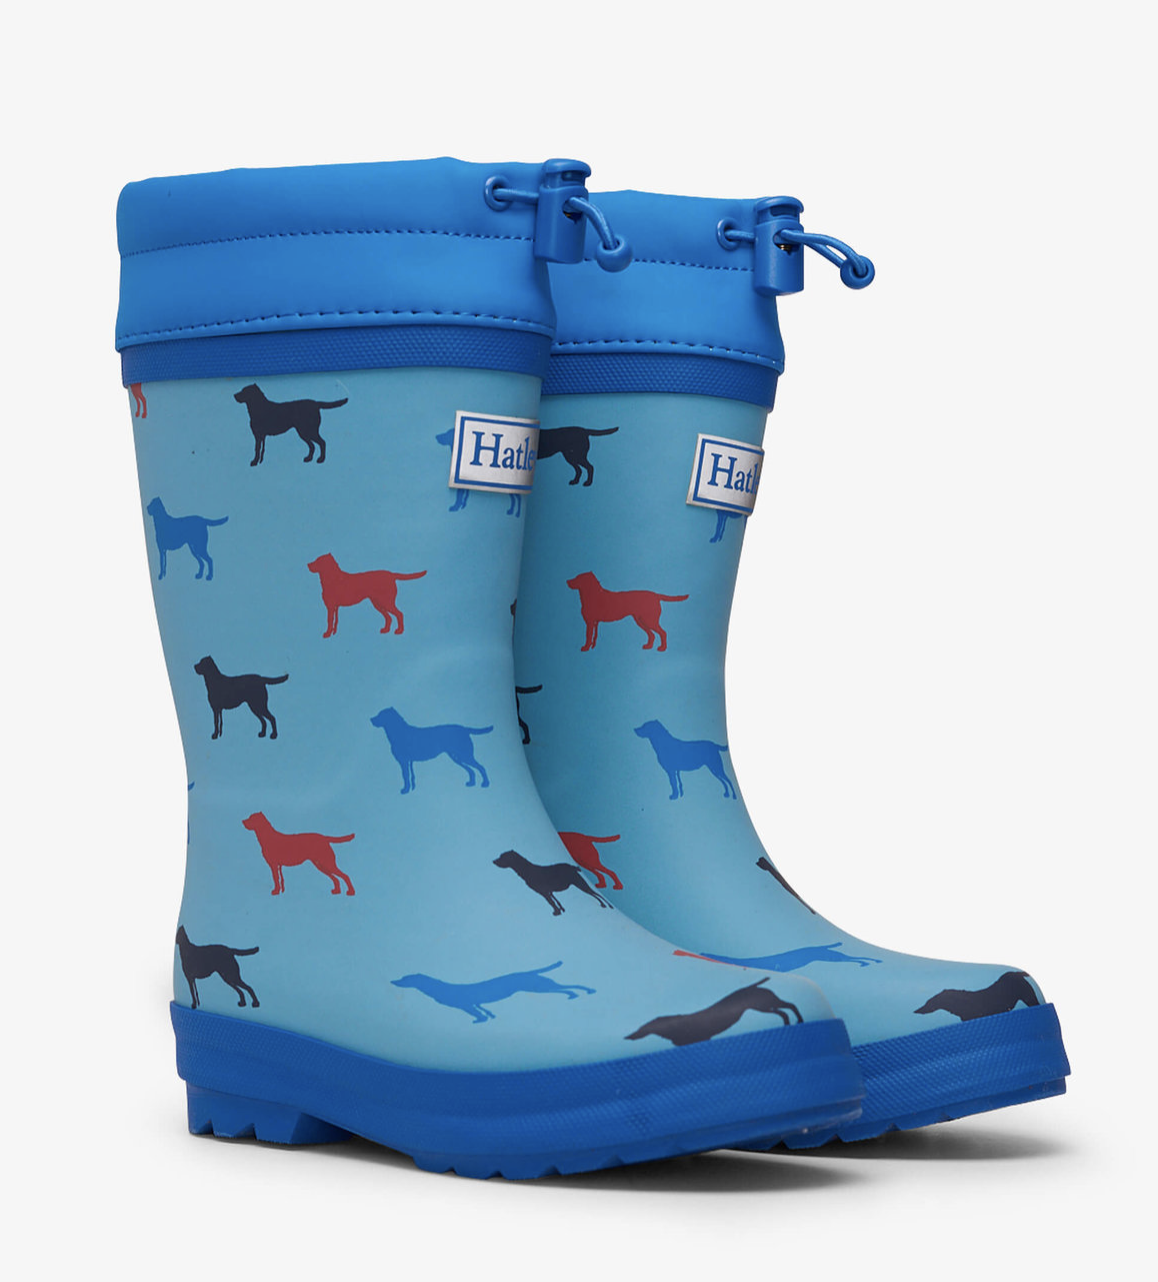 Friendly labs Serpa lined rain boots